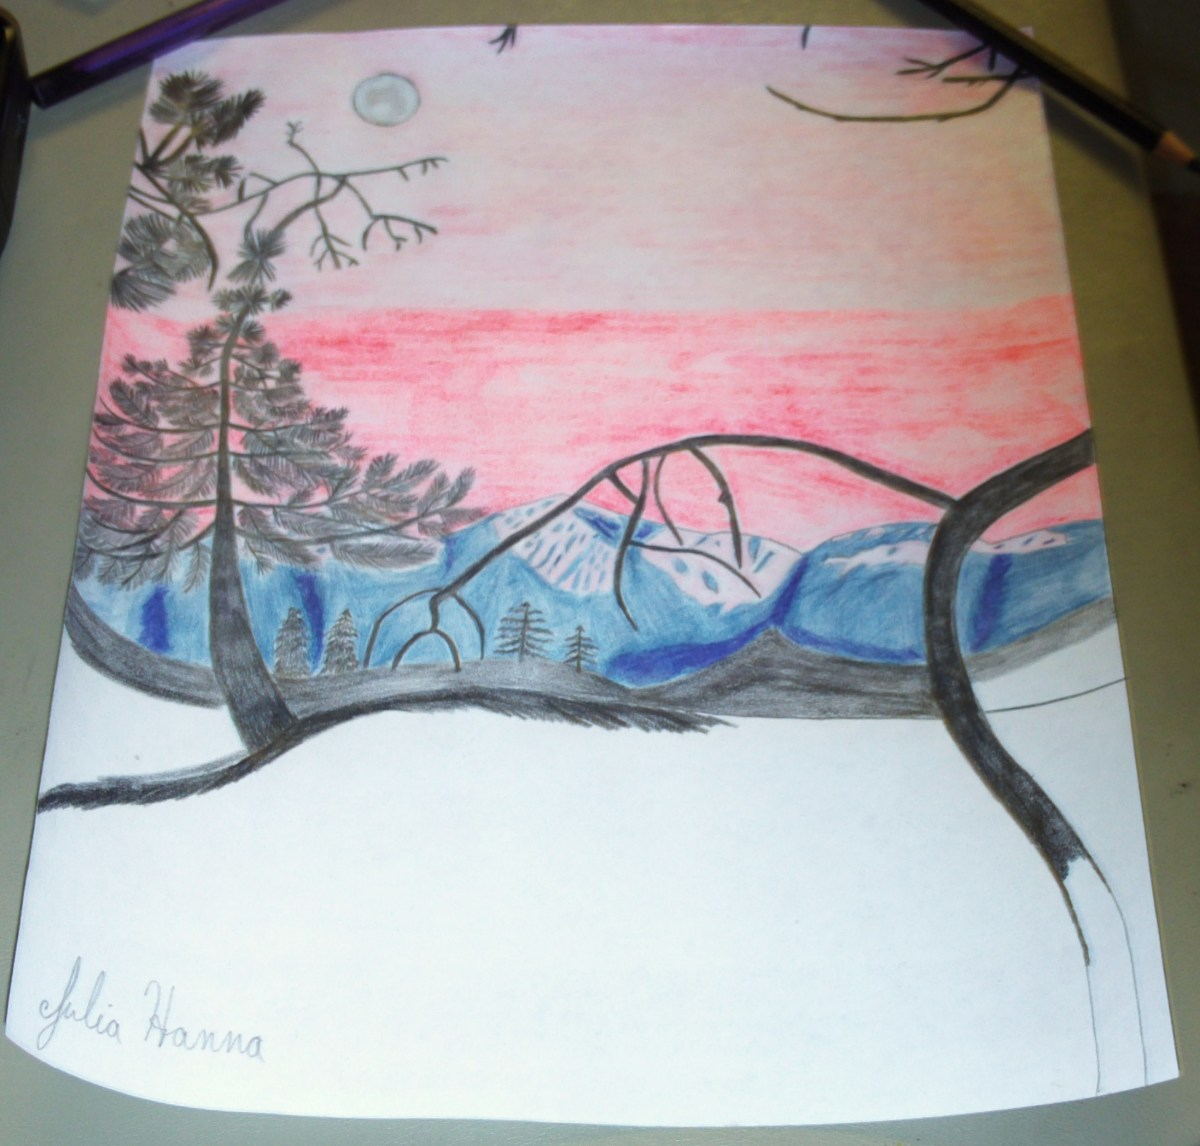 The black colored pencil is being used to created the shape of the mountains in this sunset scene.